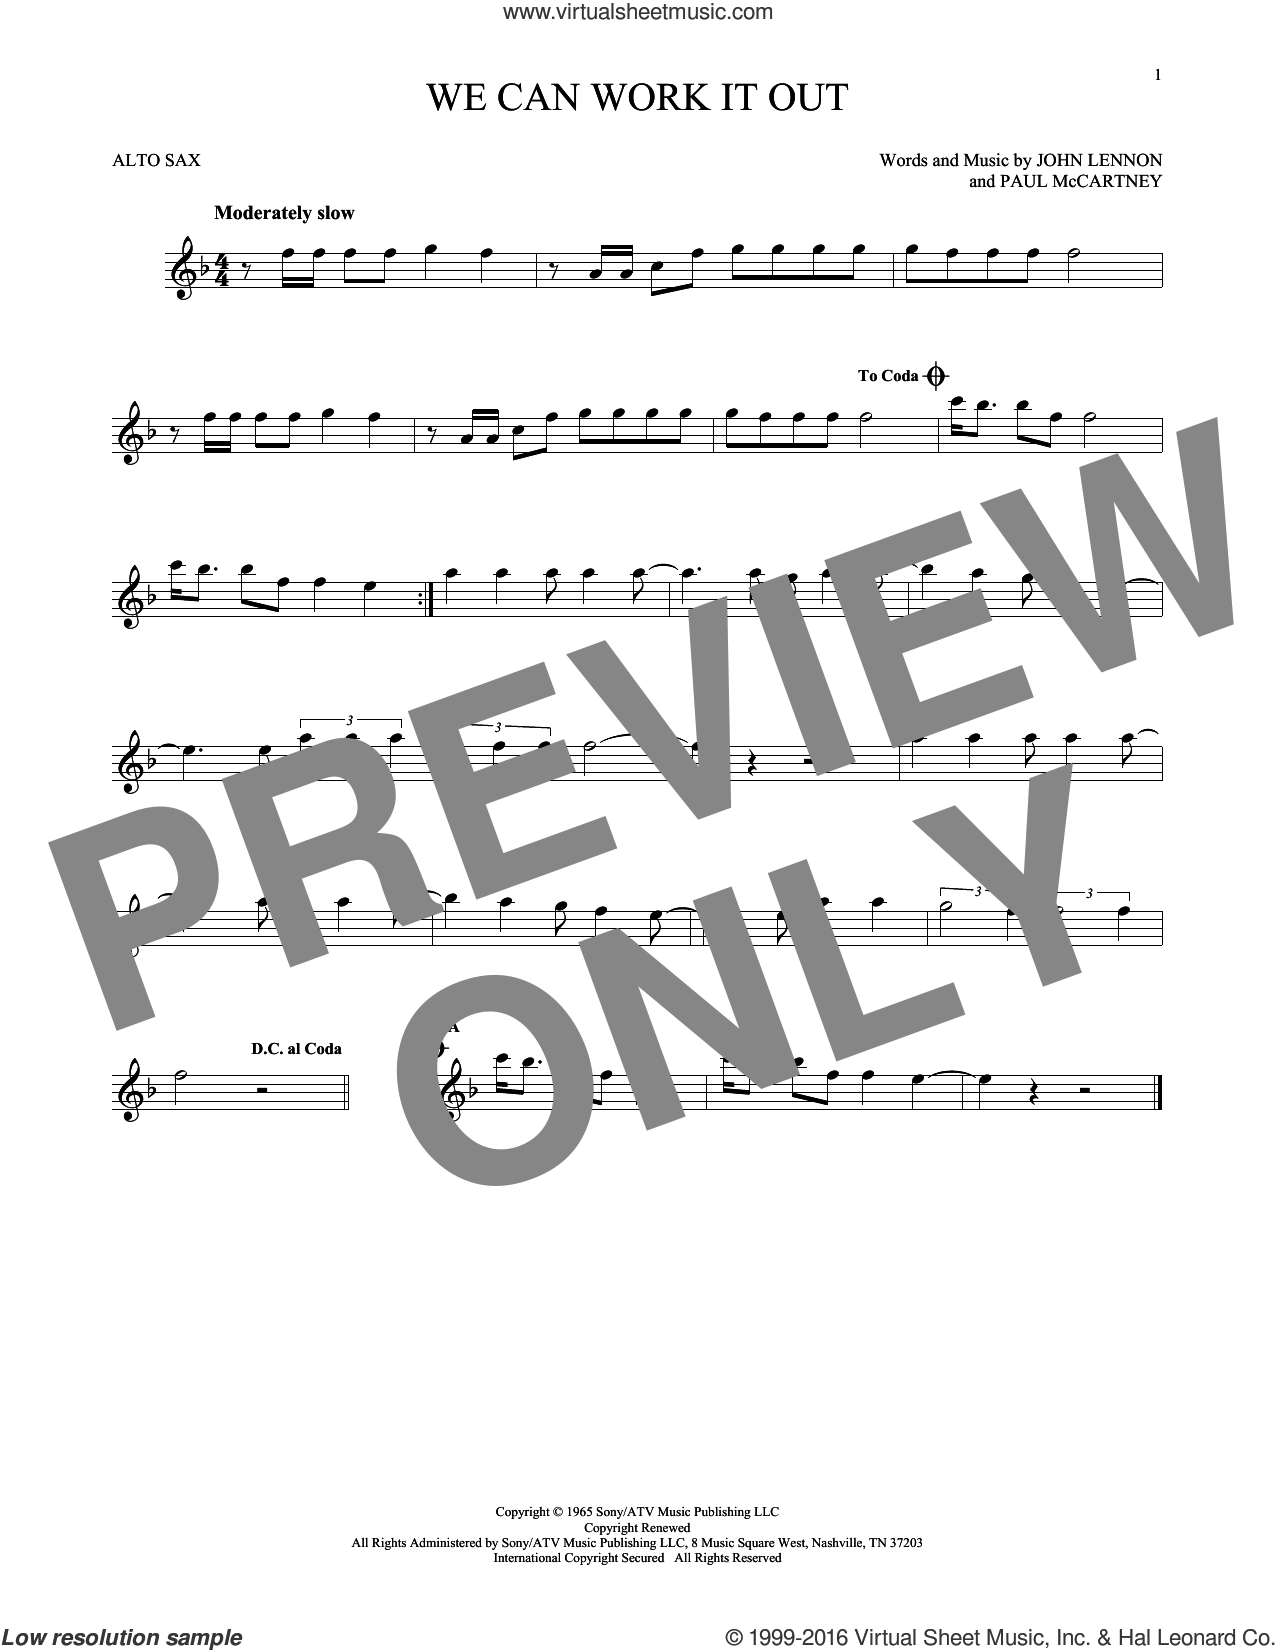 We Can Work It Out sheet music for alto saxophone solo by The Beatles, John Lennon and Paul McCartney, intermediate. Score Image Preview.